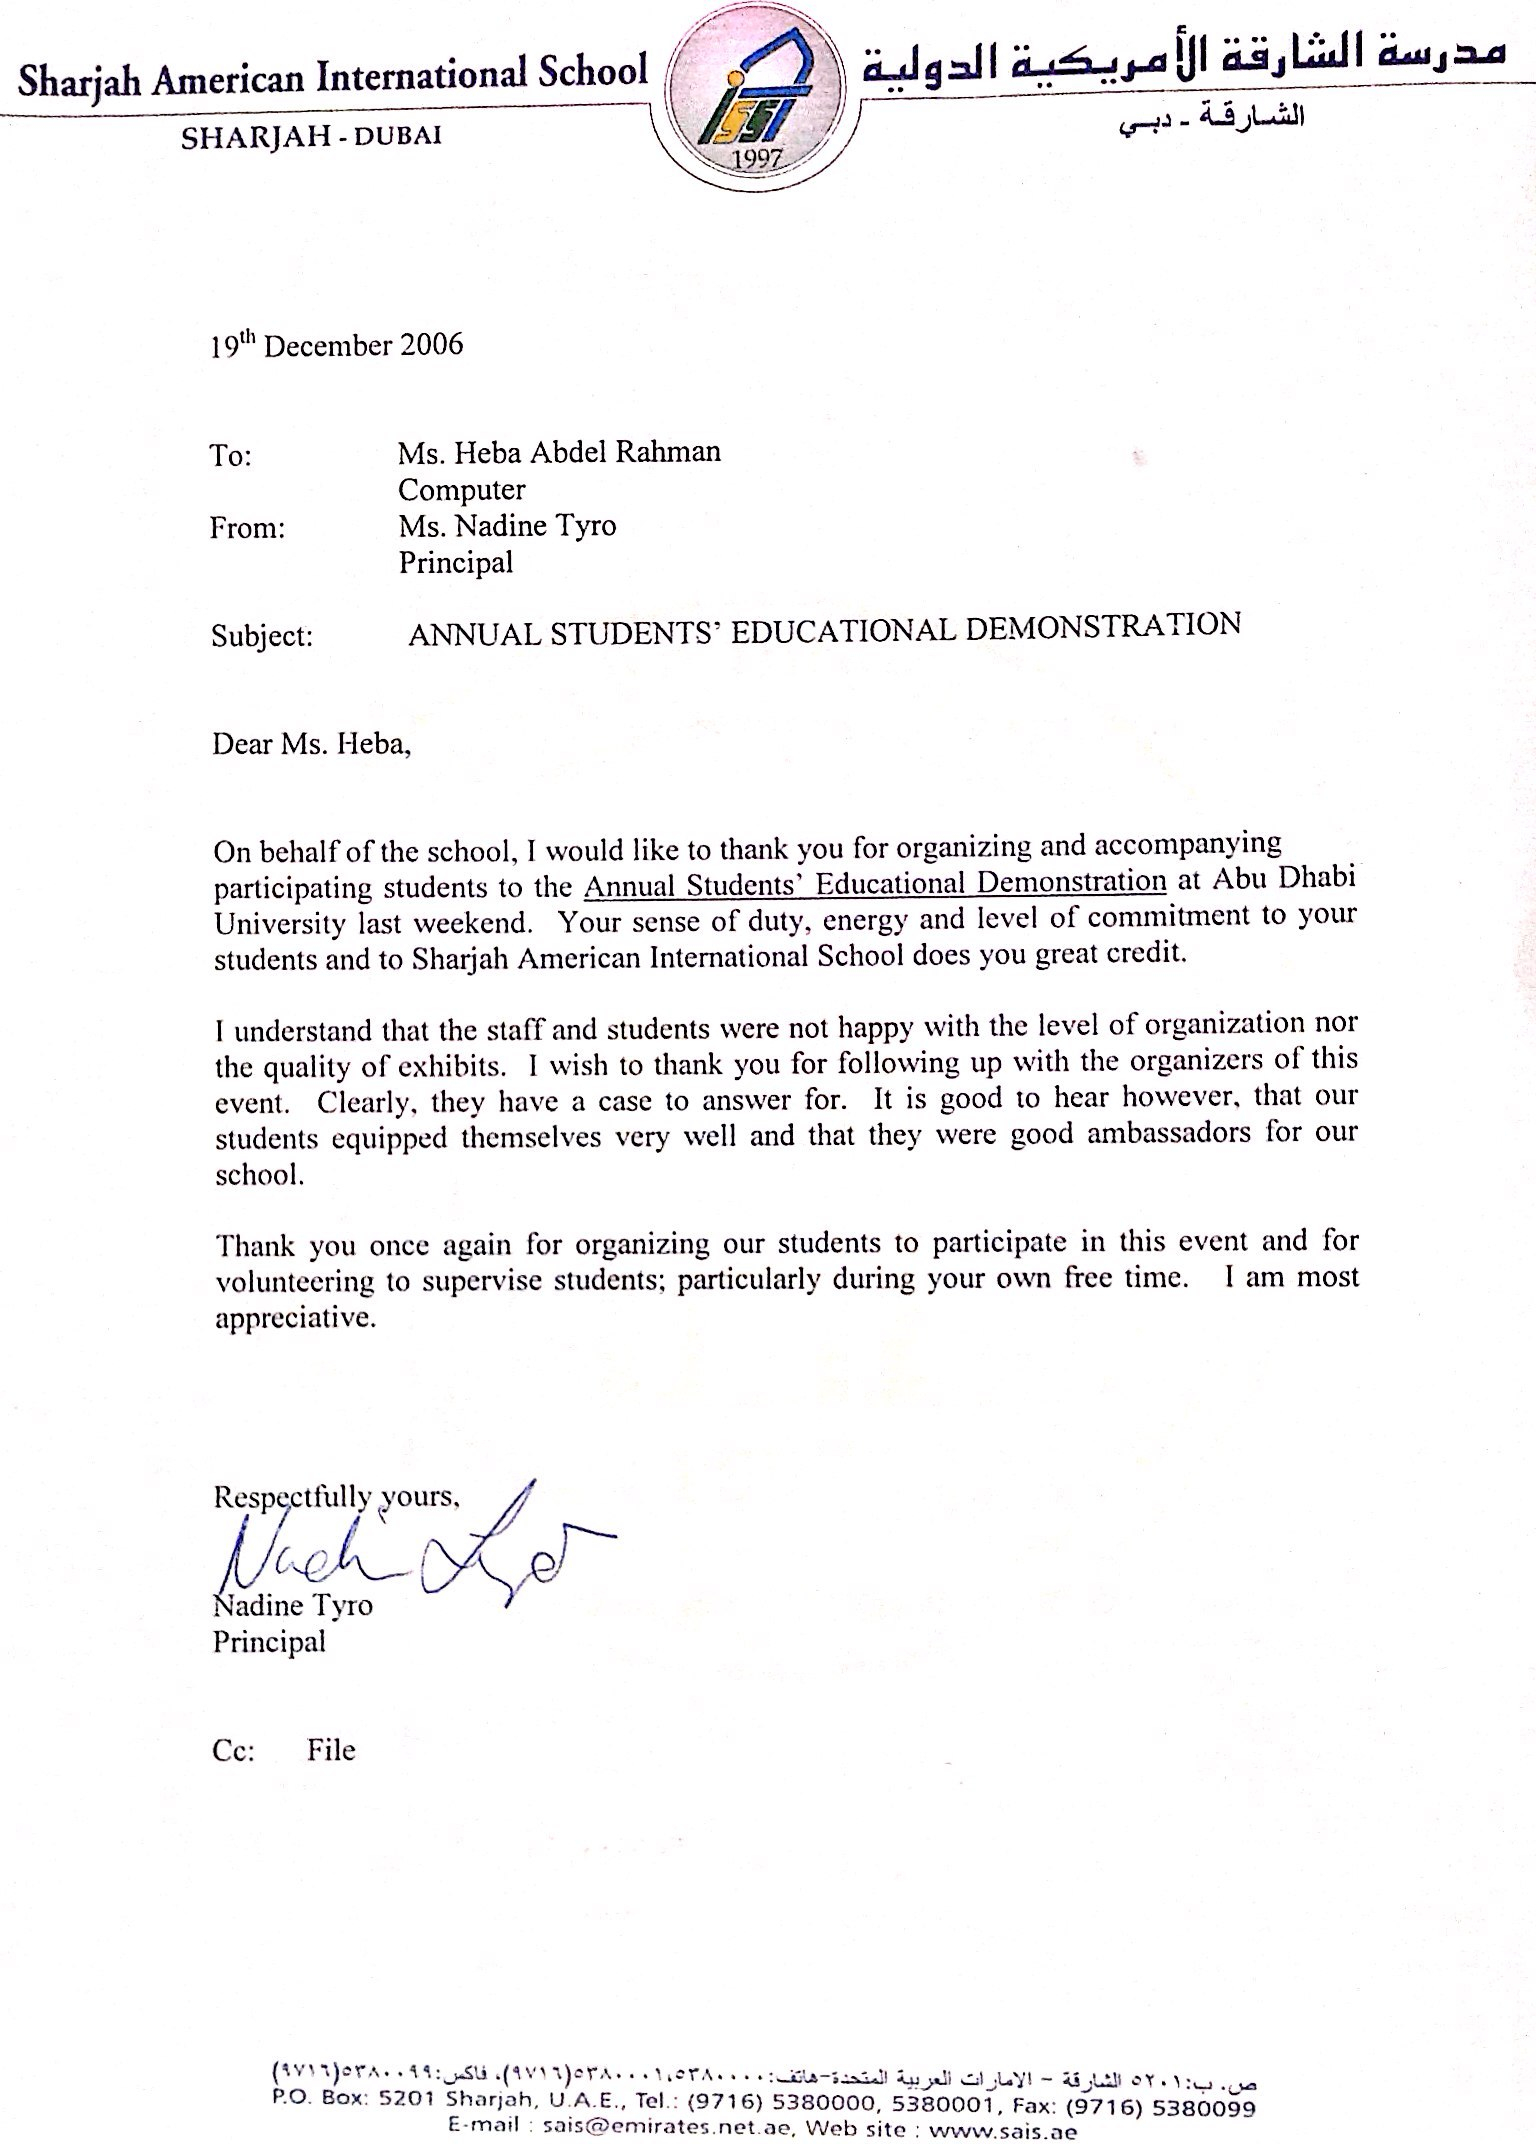 Recommendation Letter For Student To Private School